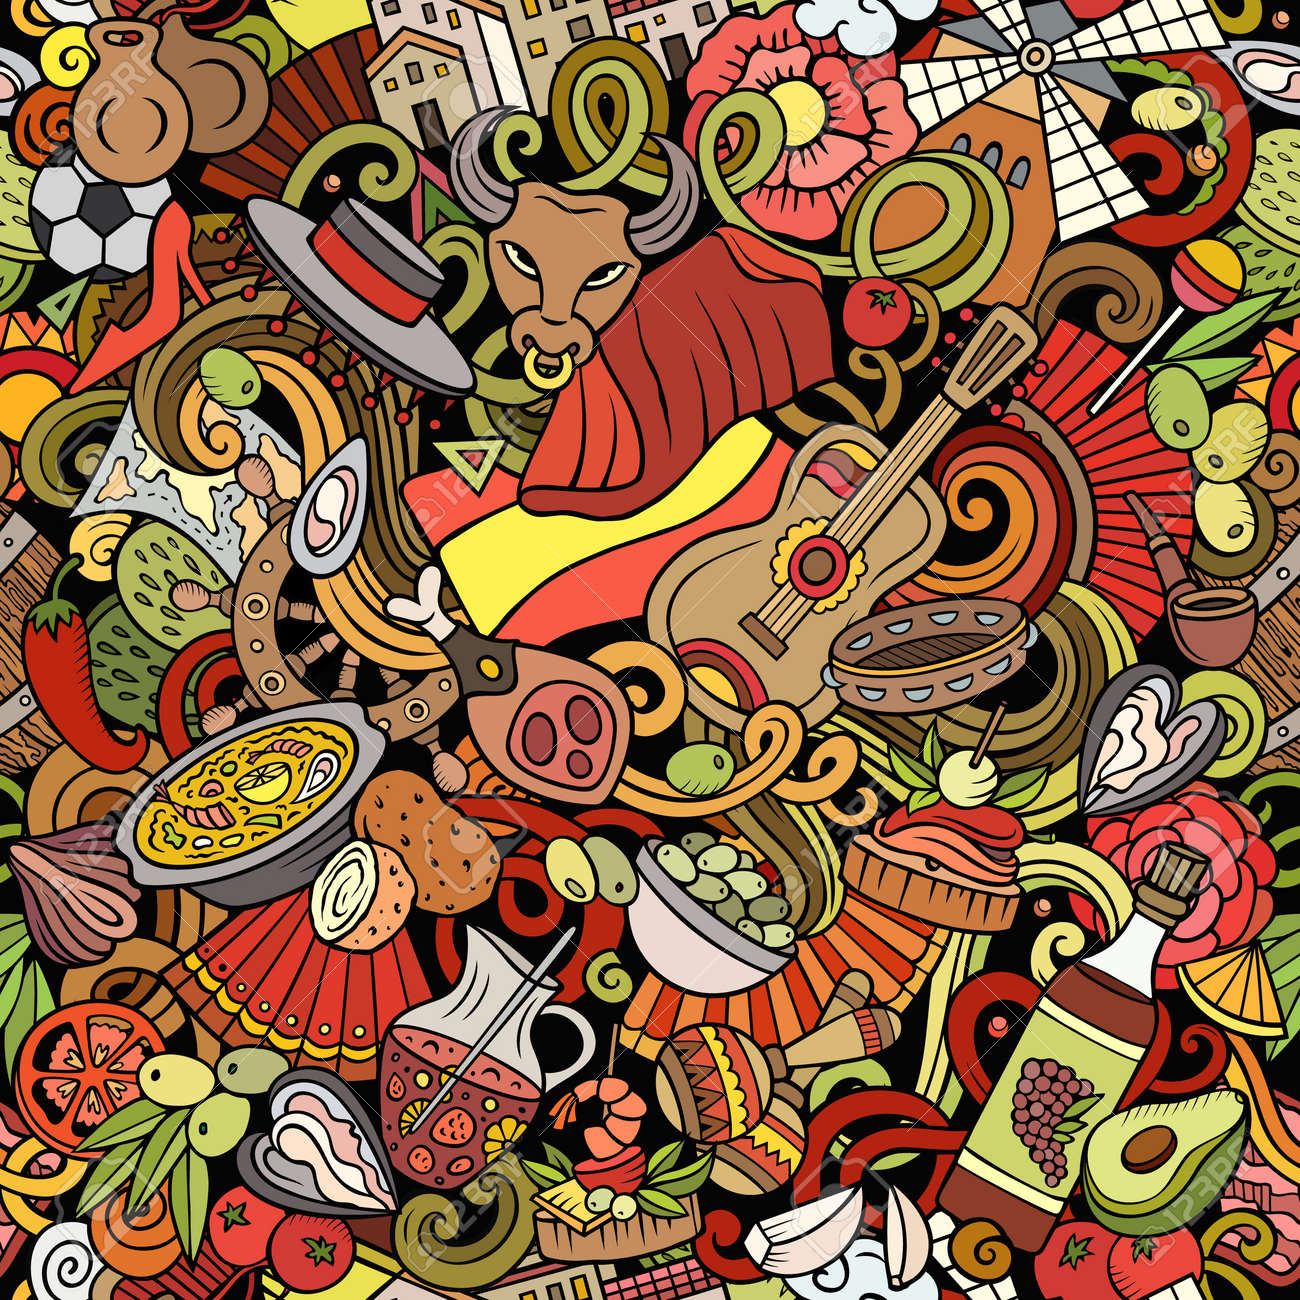 Cartoon doodles Spain seamless pattern. Backdrop with Spanish culture symbols and items. Colorful detailed, with lots of objects background for print on fabric, textile, phone cases, wrapping paper. - 167836514